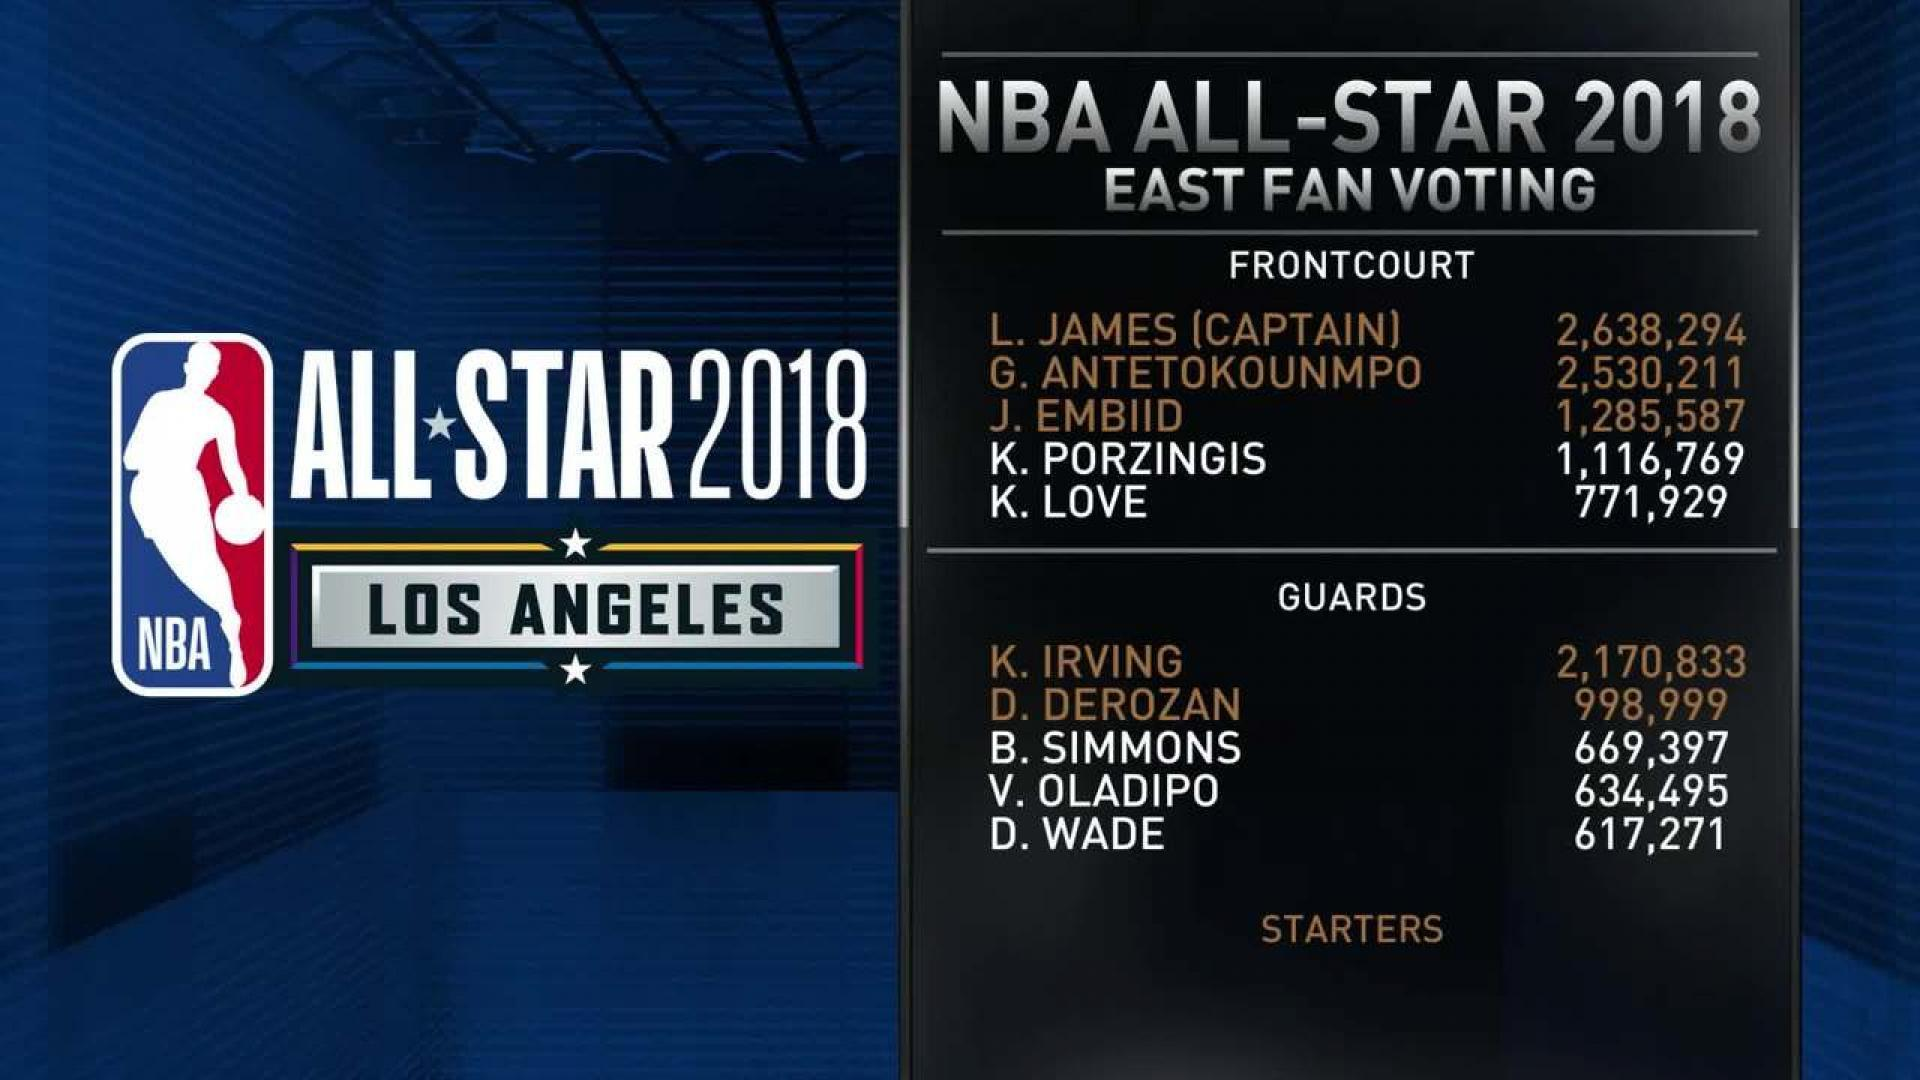 6ab3cef5a13c 00 00. Inside The NBA s experts breakdown the Eastern Conference All-Star  ...